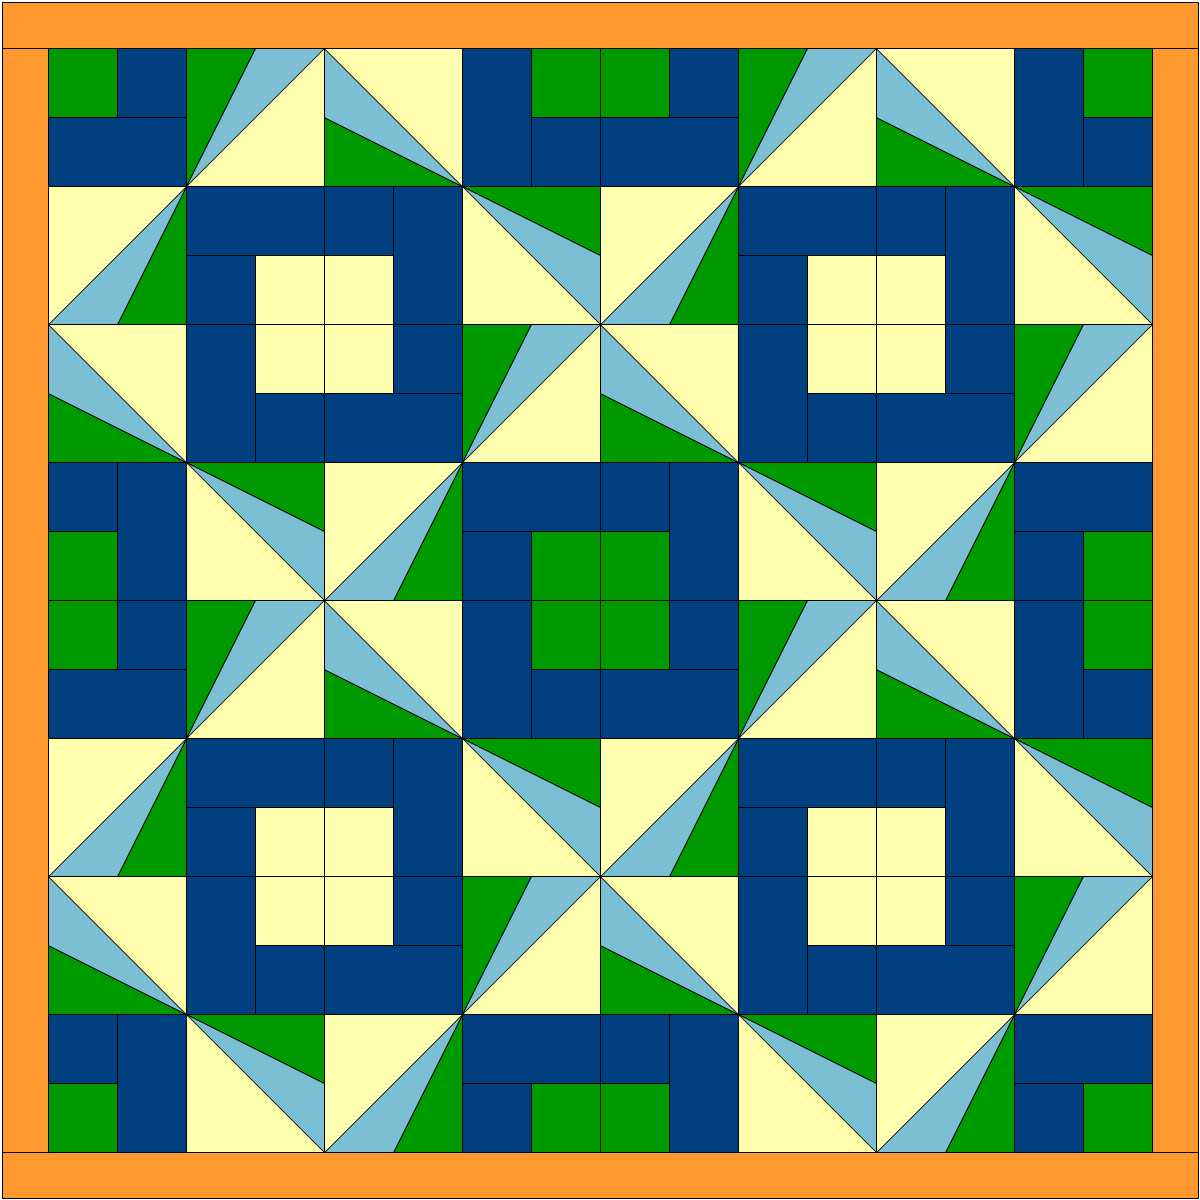 Sunbeams quilt 2 colors vs 2.JPG